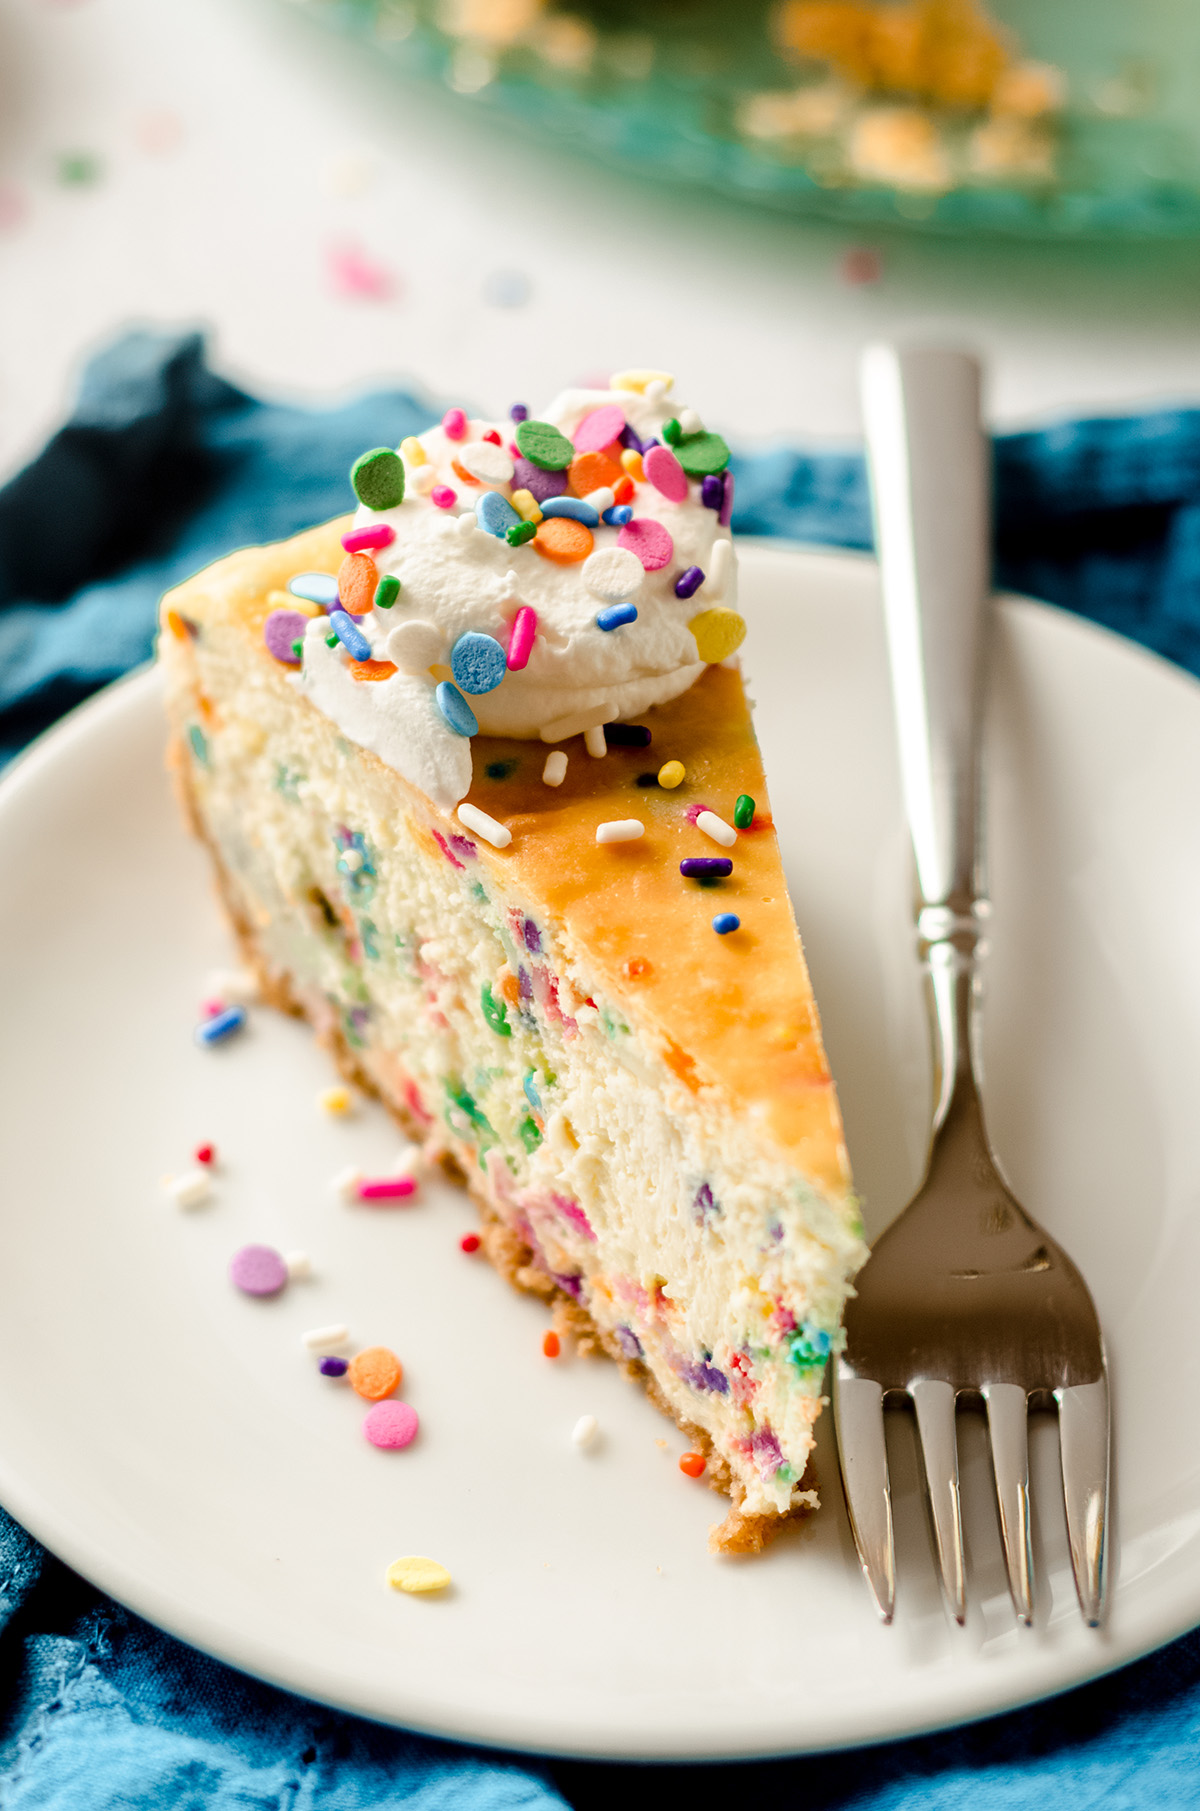 slice of funfetti cheesecake on a plate with a fork